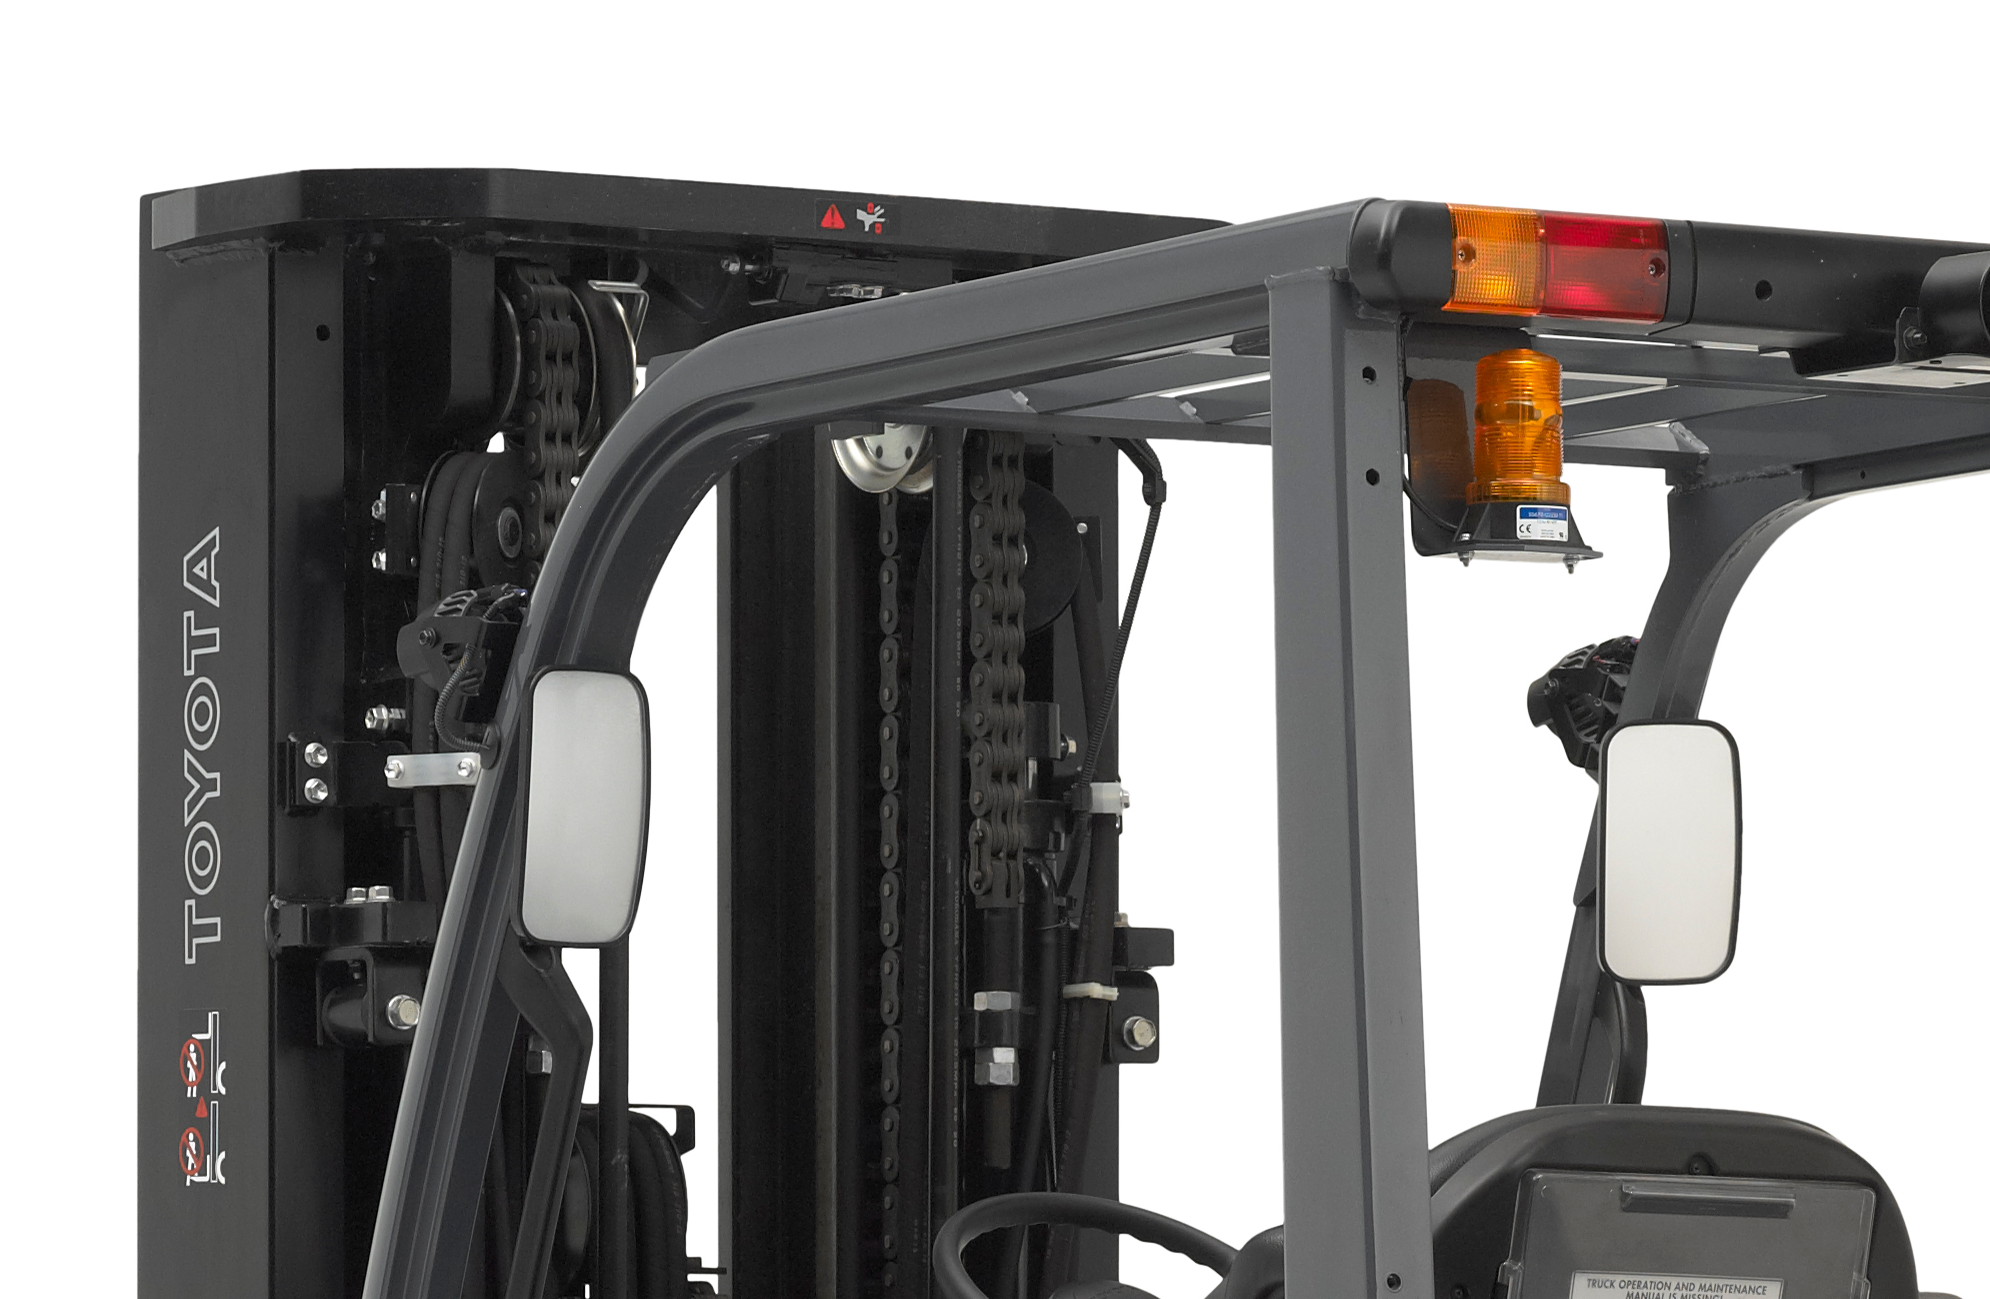 Close-up photo of the top half of Toyota's Mid IC Pneumatic Forklift.